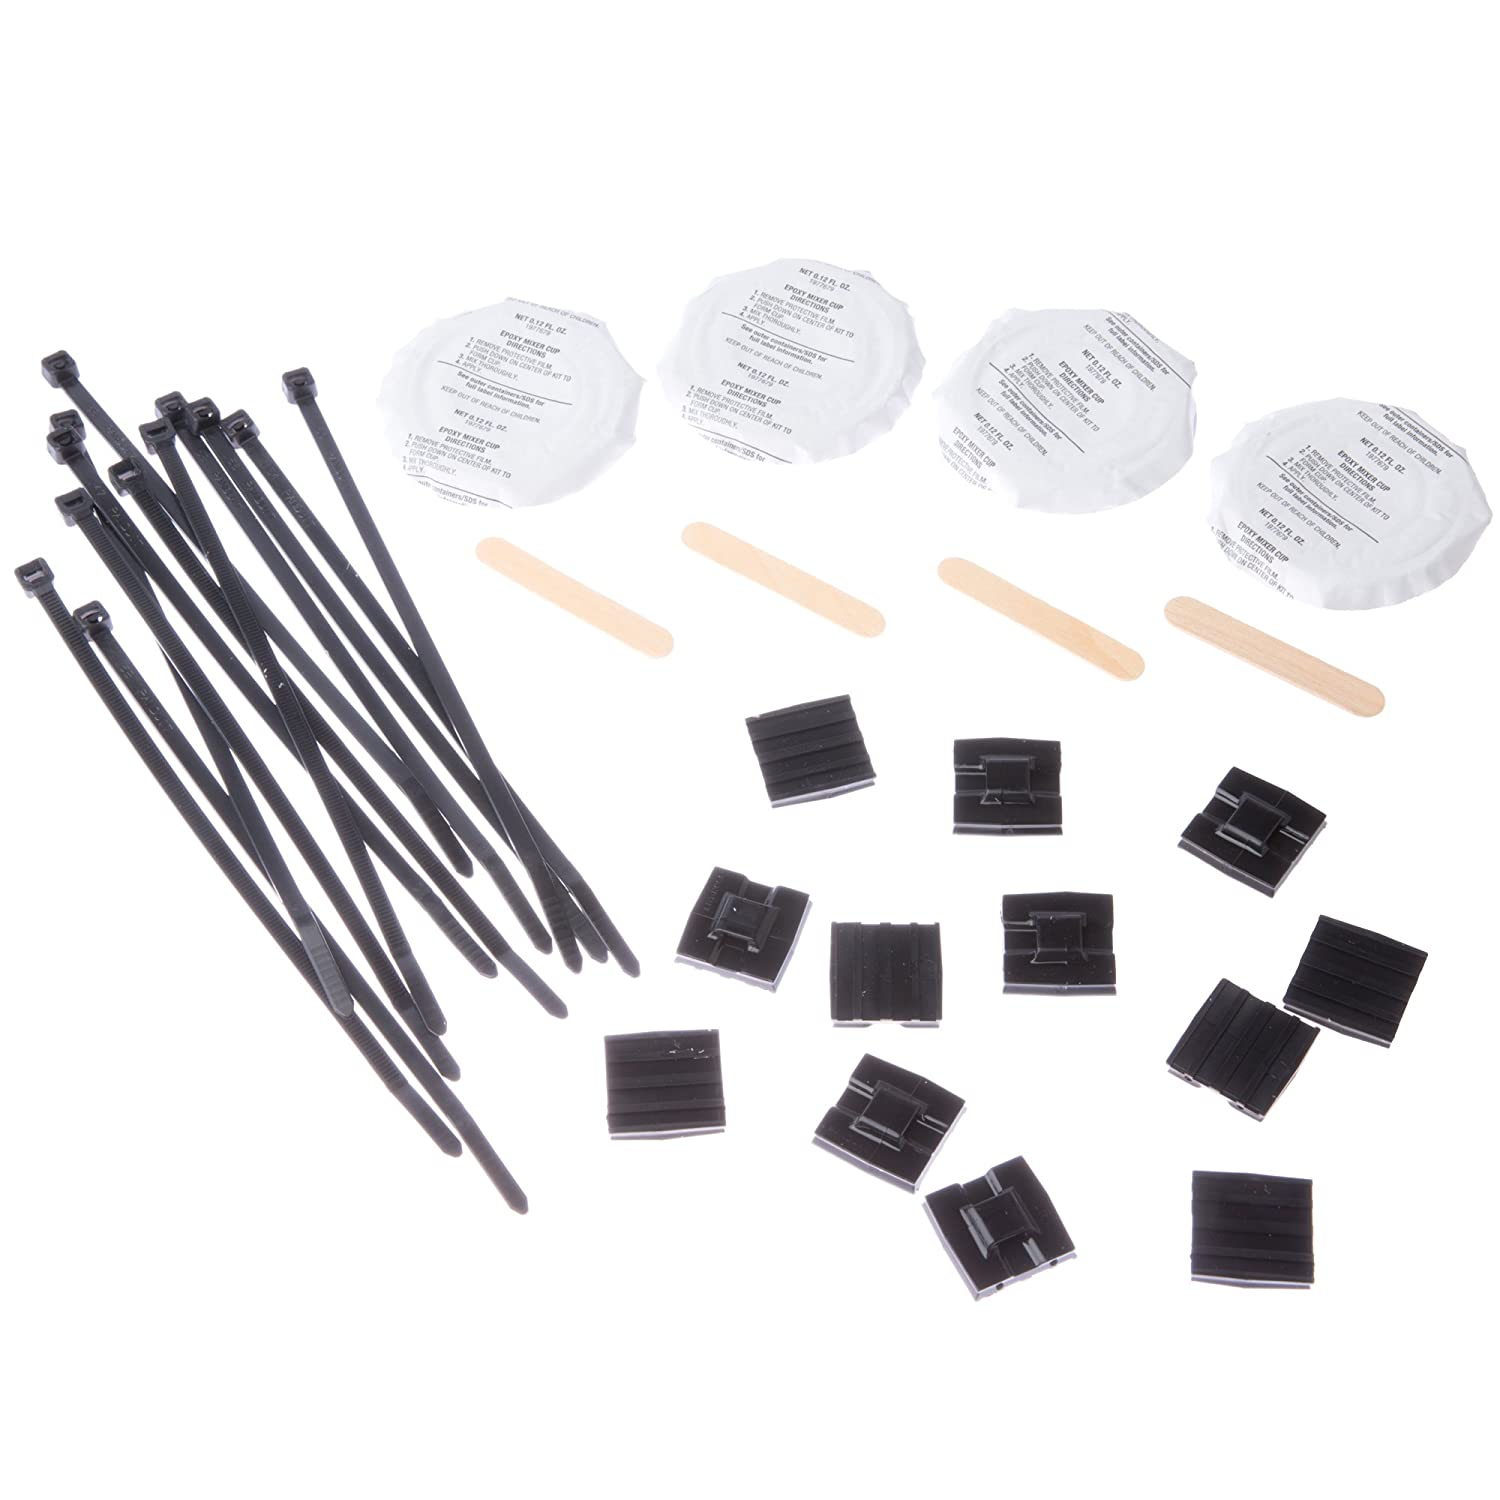 Pack of 10 Panduit EMSK12-4-12-X0 Epoxy Applied Cable Tie Mount Kit 12 Cable Ties Indoor//Outdoor Environment 4 Epoxy Cups 12 EMS Mounts 4 Mixer Sticks Epoxy Mounting Kit with EMS Mounts and Cable Ties